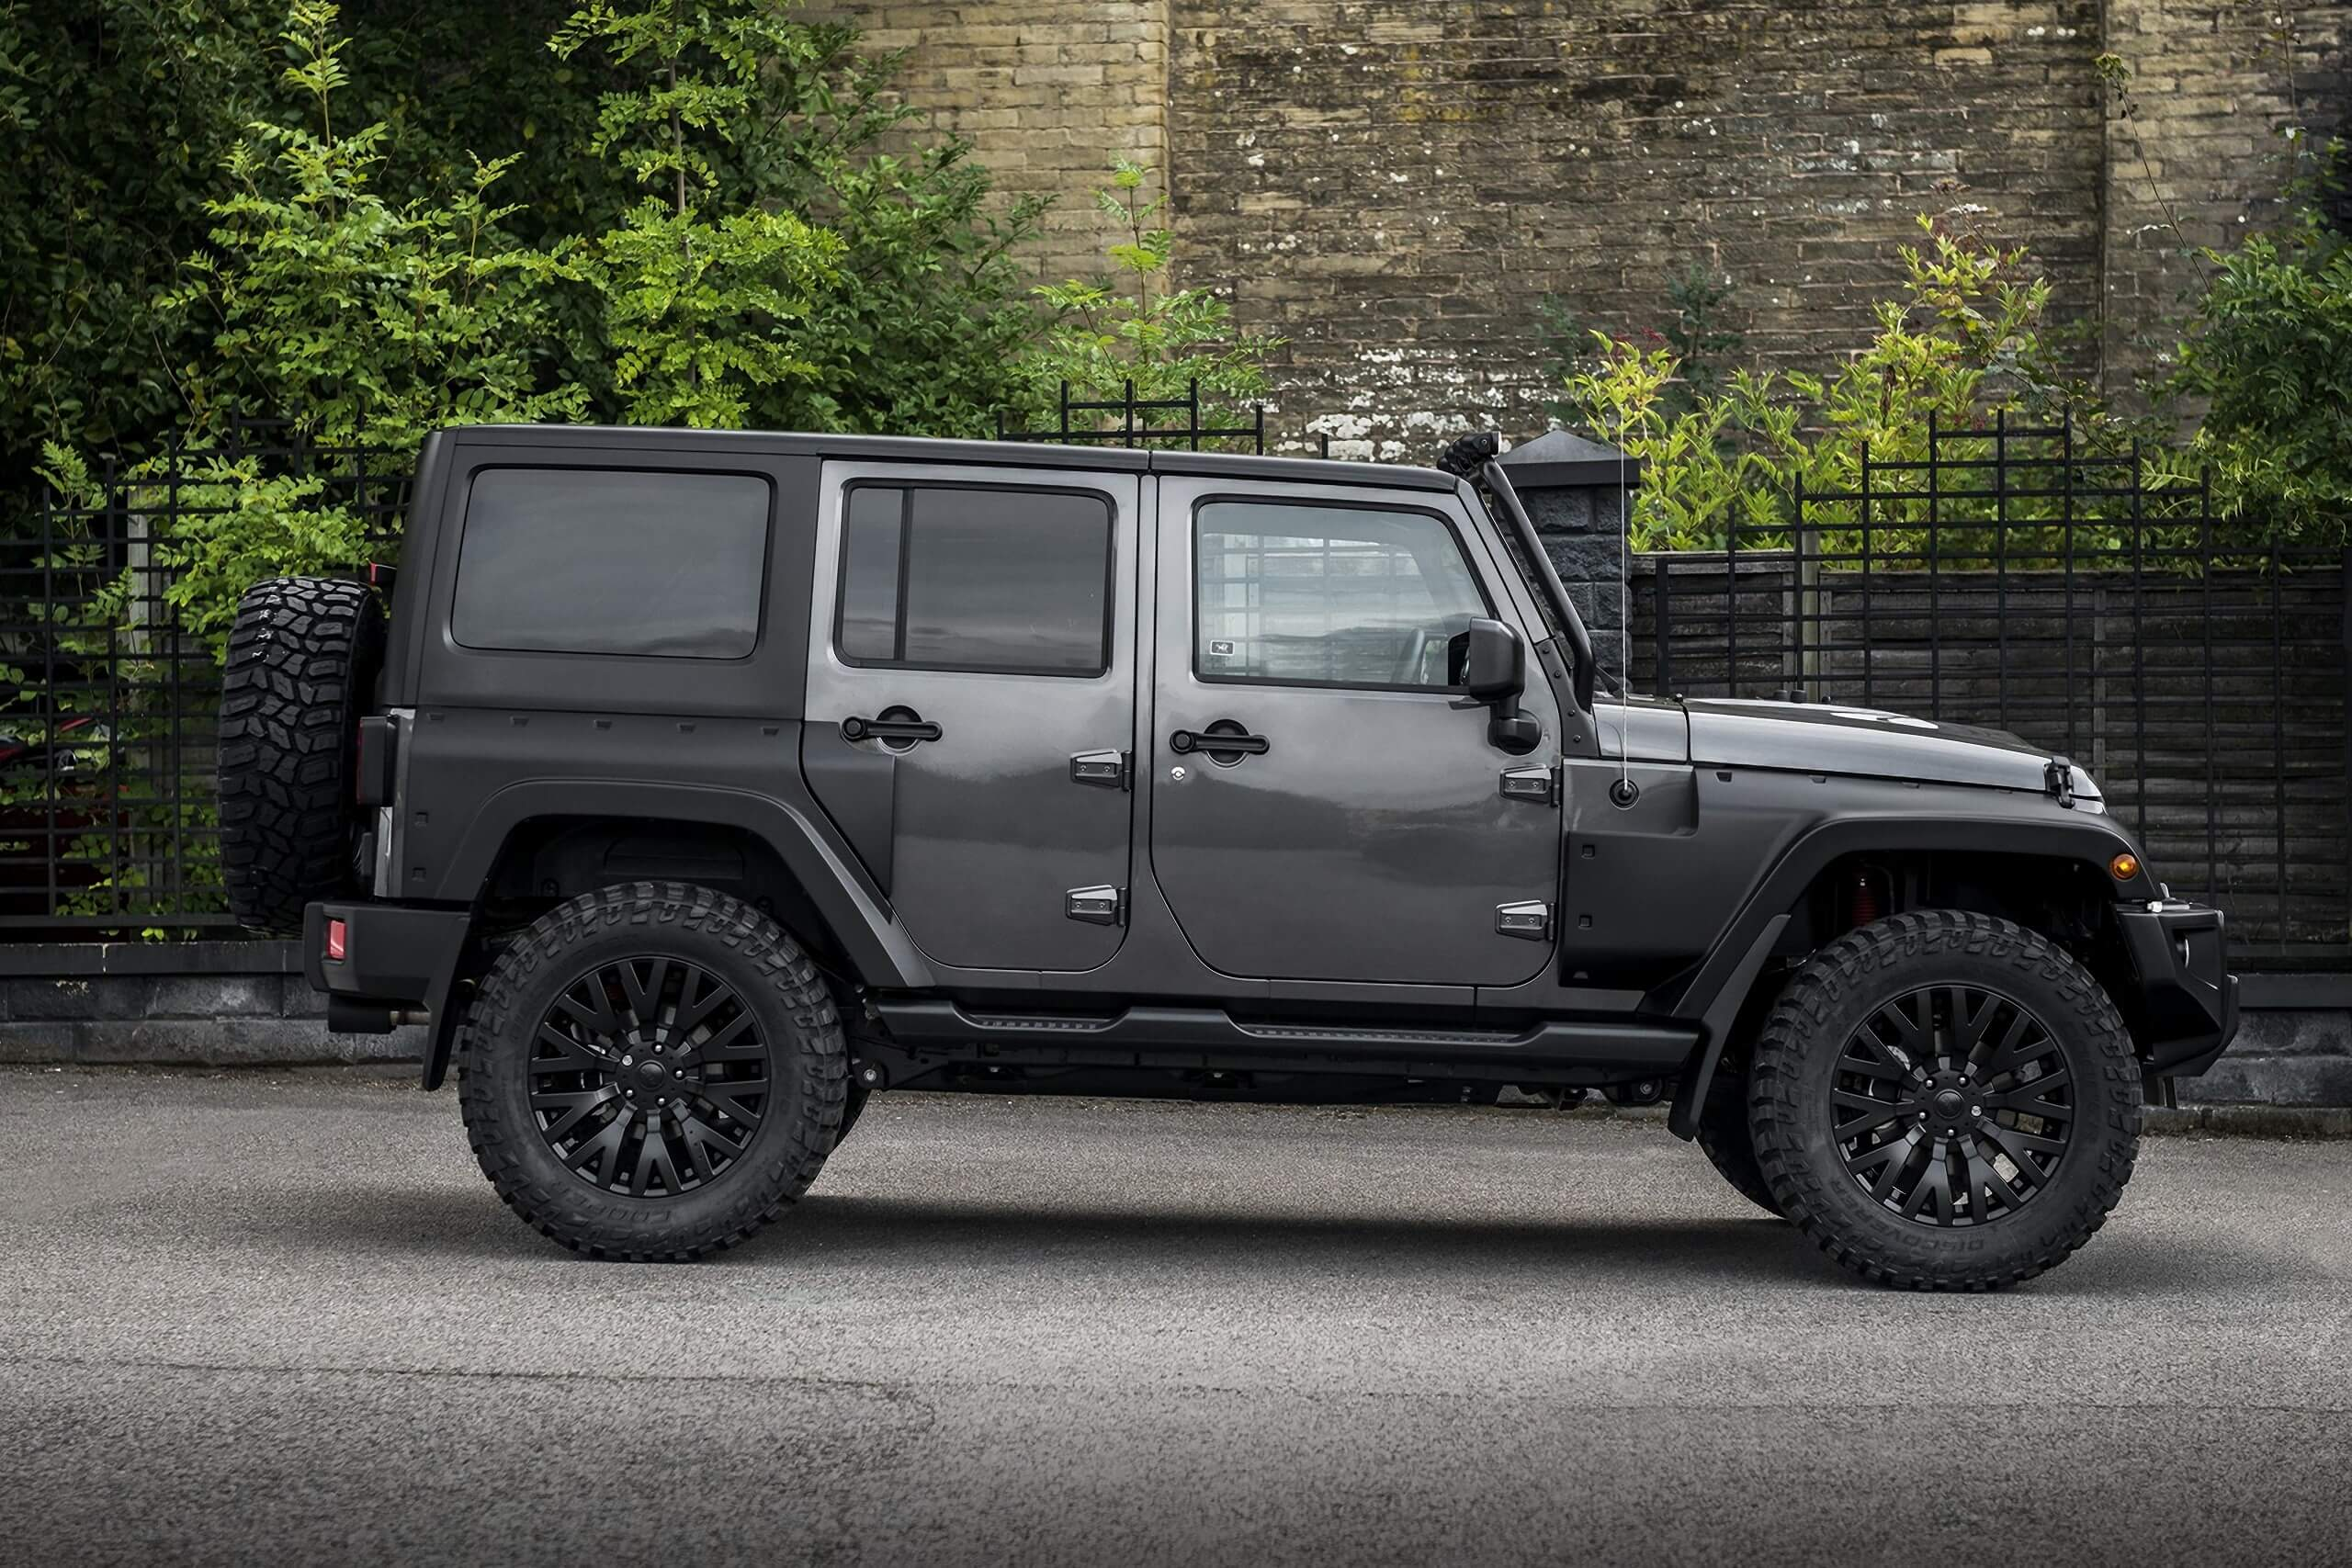 Jeep Wrangler Chelsea Truck Co  WIDE BODY EXPEDITION